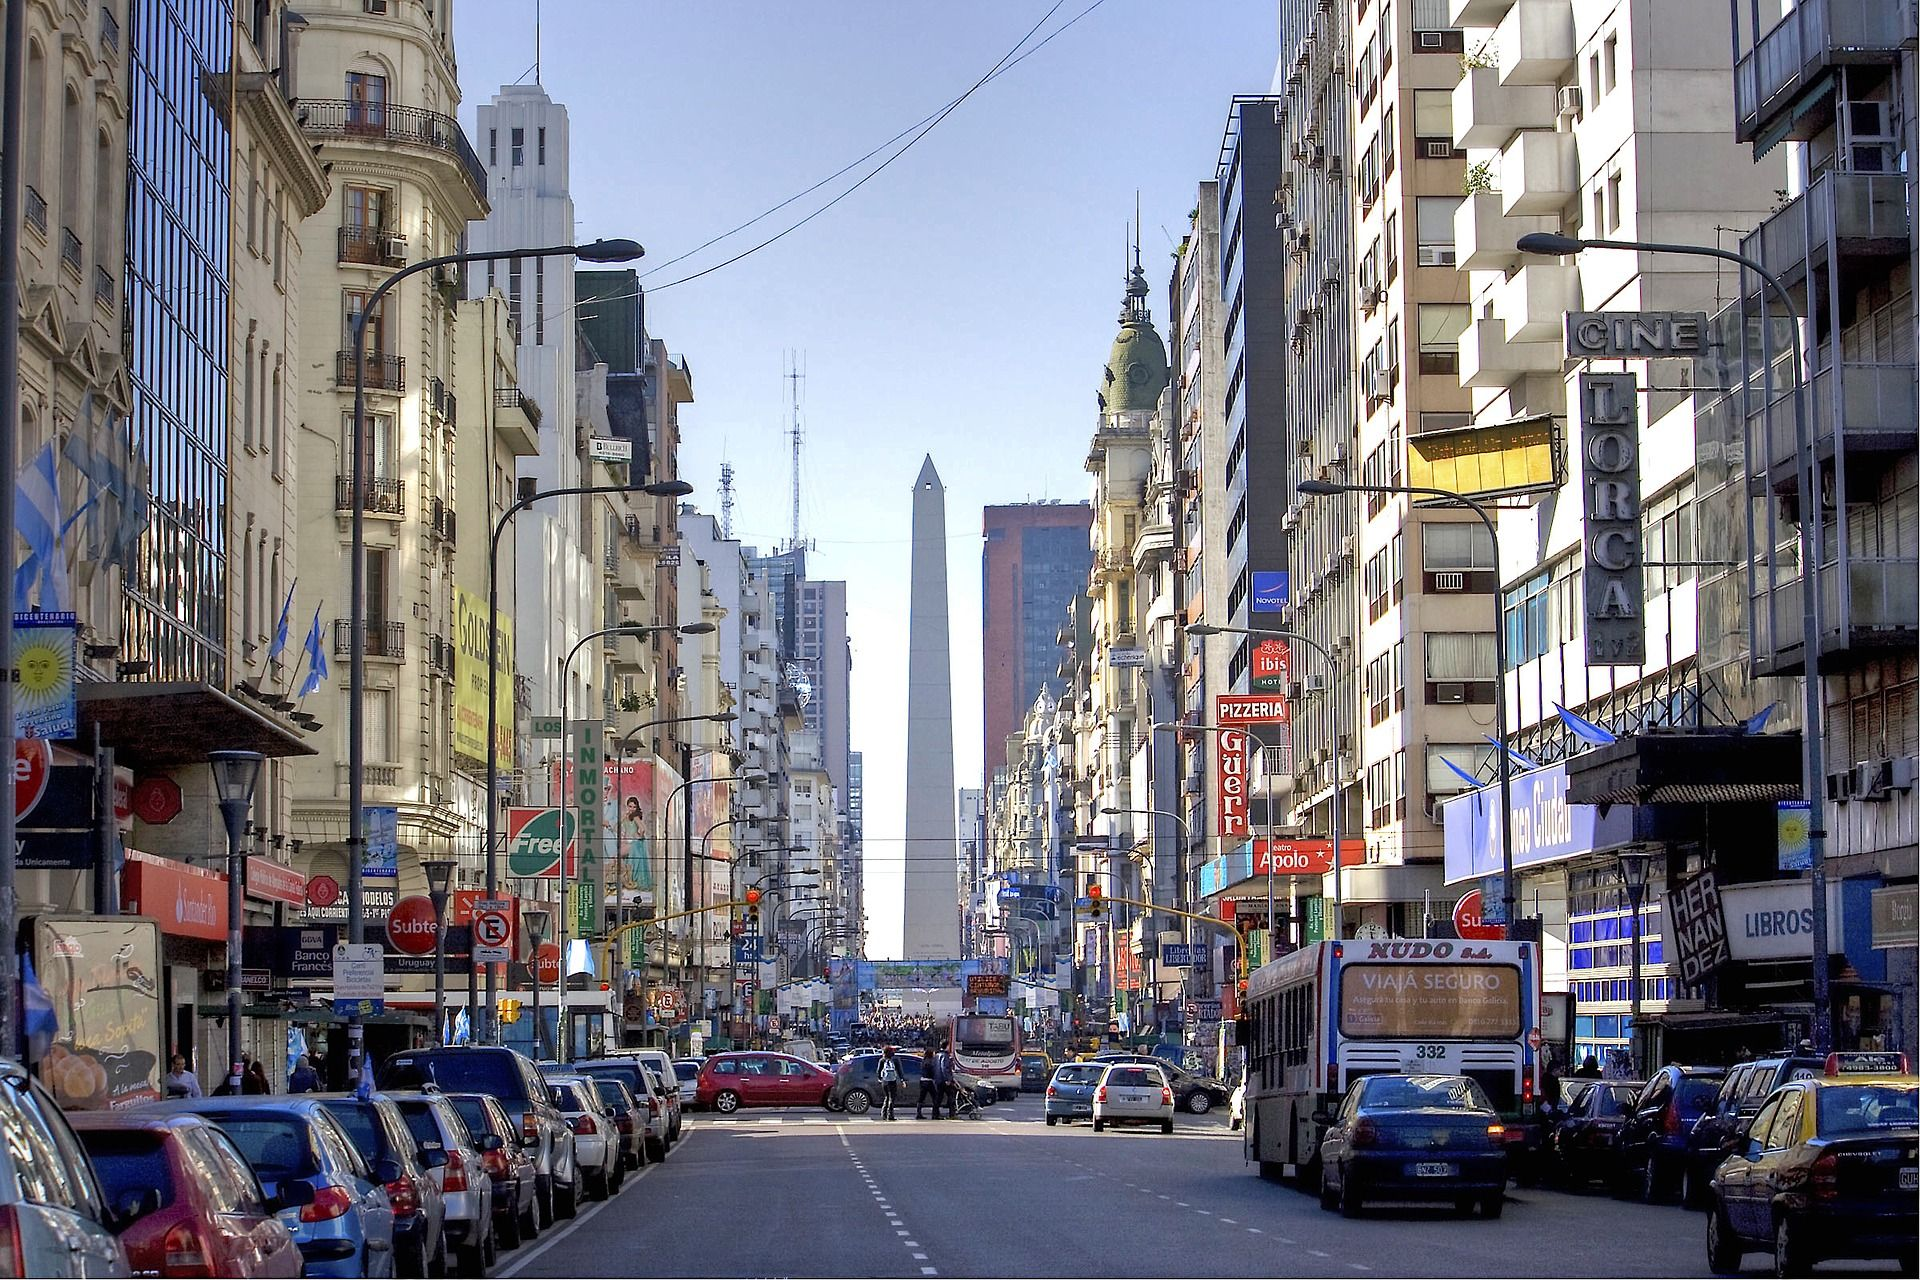 Image of cars and buildings on a busy street in Buenos Aires.